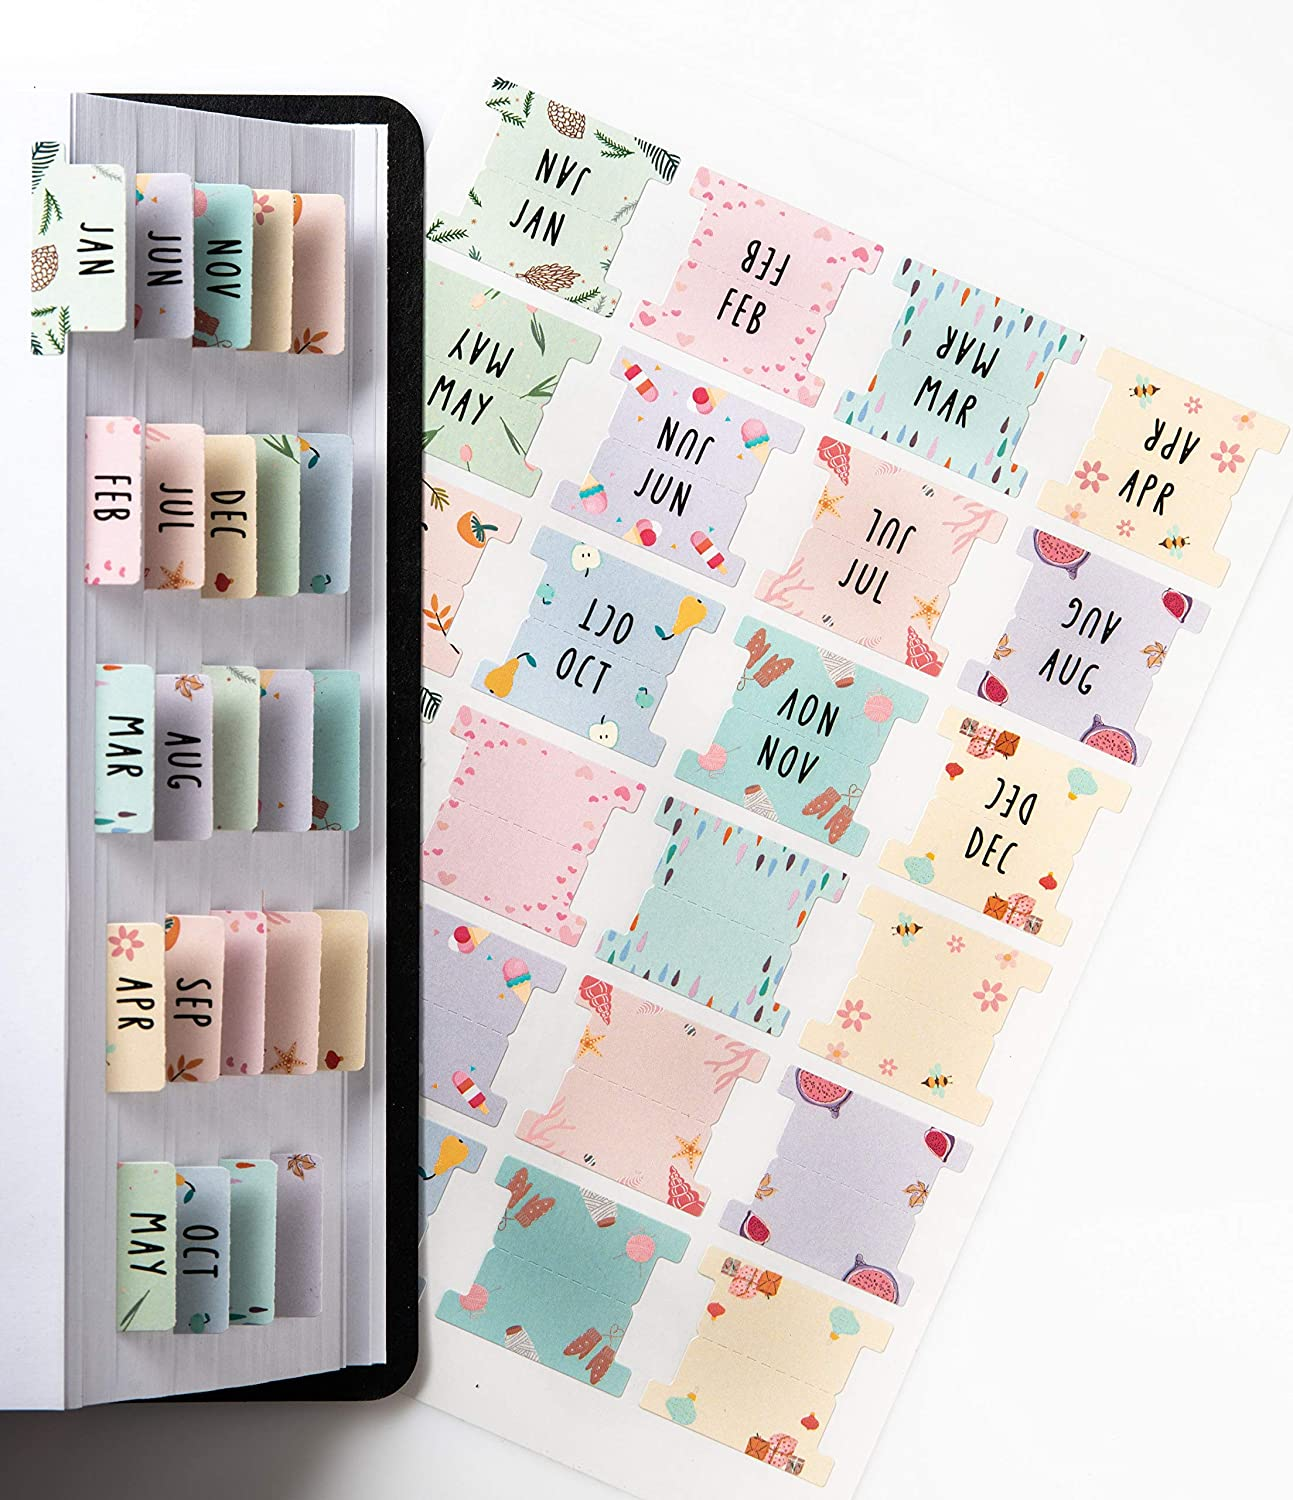 DiverseBee Laminated Planner Monthly Tabs, 24 Peel and Stick Tabs for Notebooks (12 Month Tabs and 12 Blank Tabs), Calendar Monthly Tab Stickers for Planners, Monthly Dividers (Assorted): Office Products